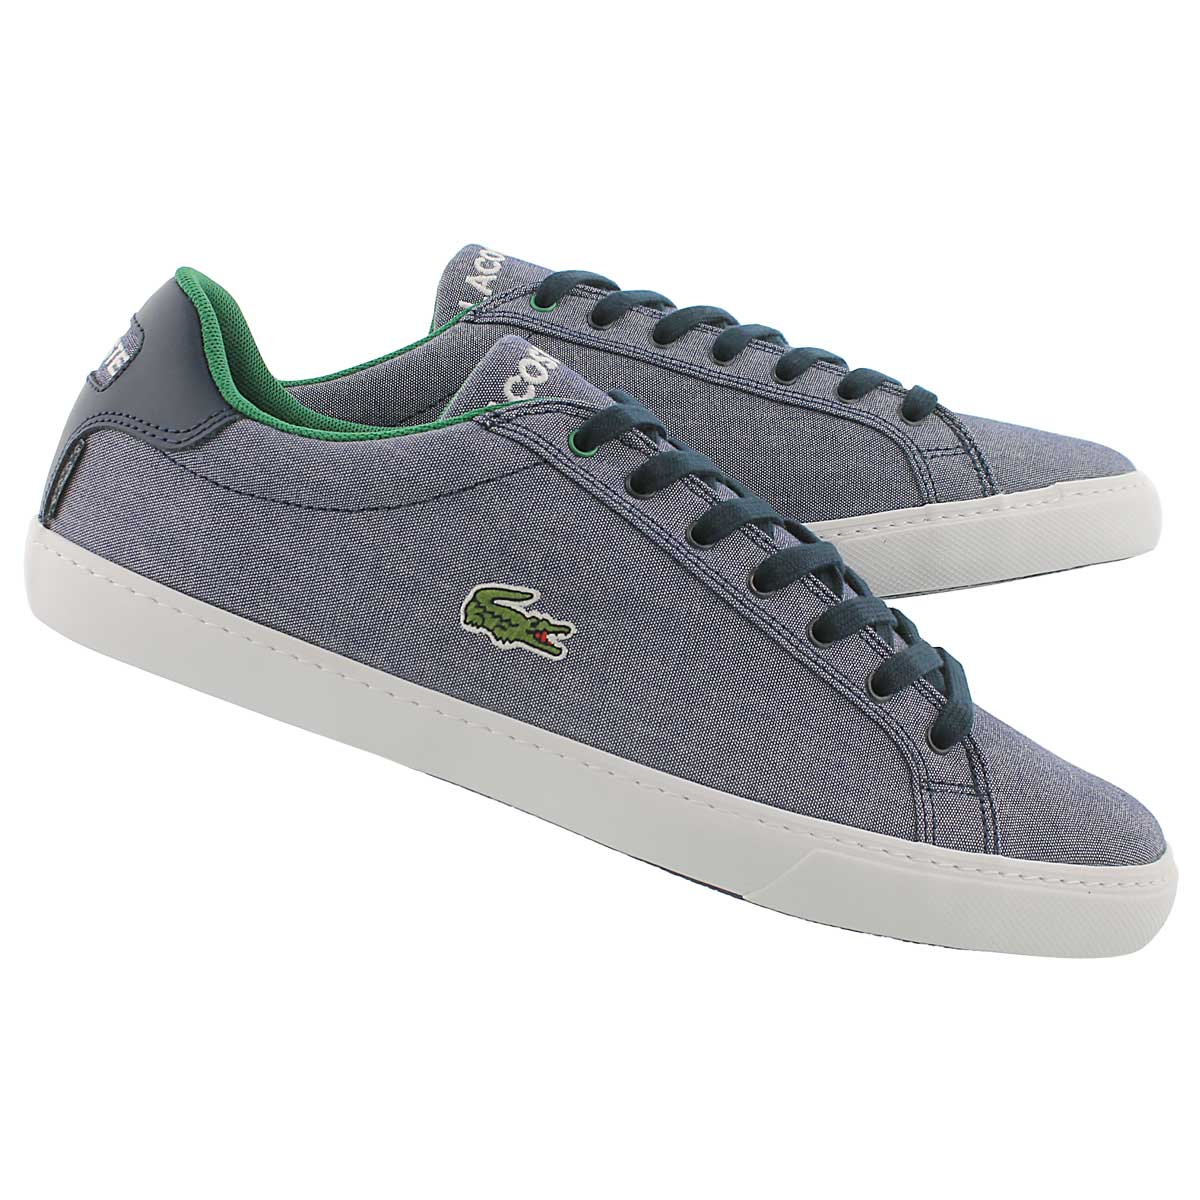 Mns Grad vulc navy canv fashion sneak